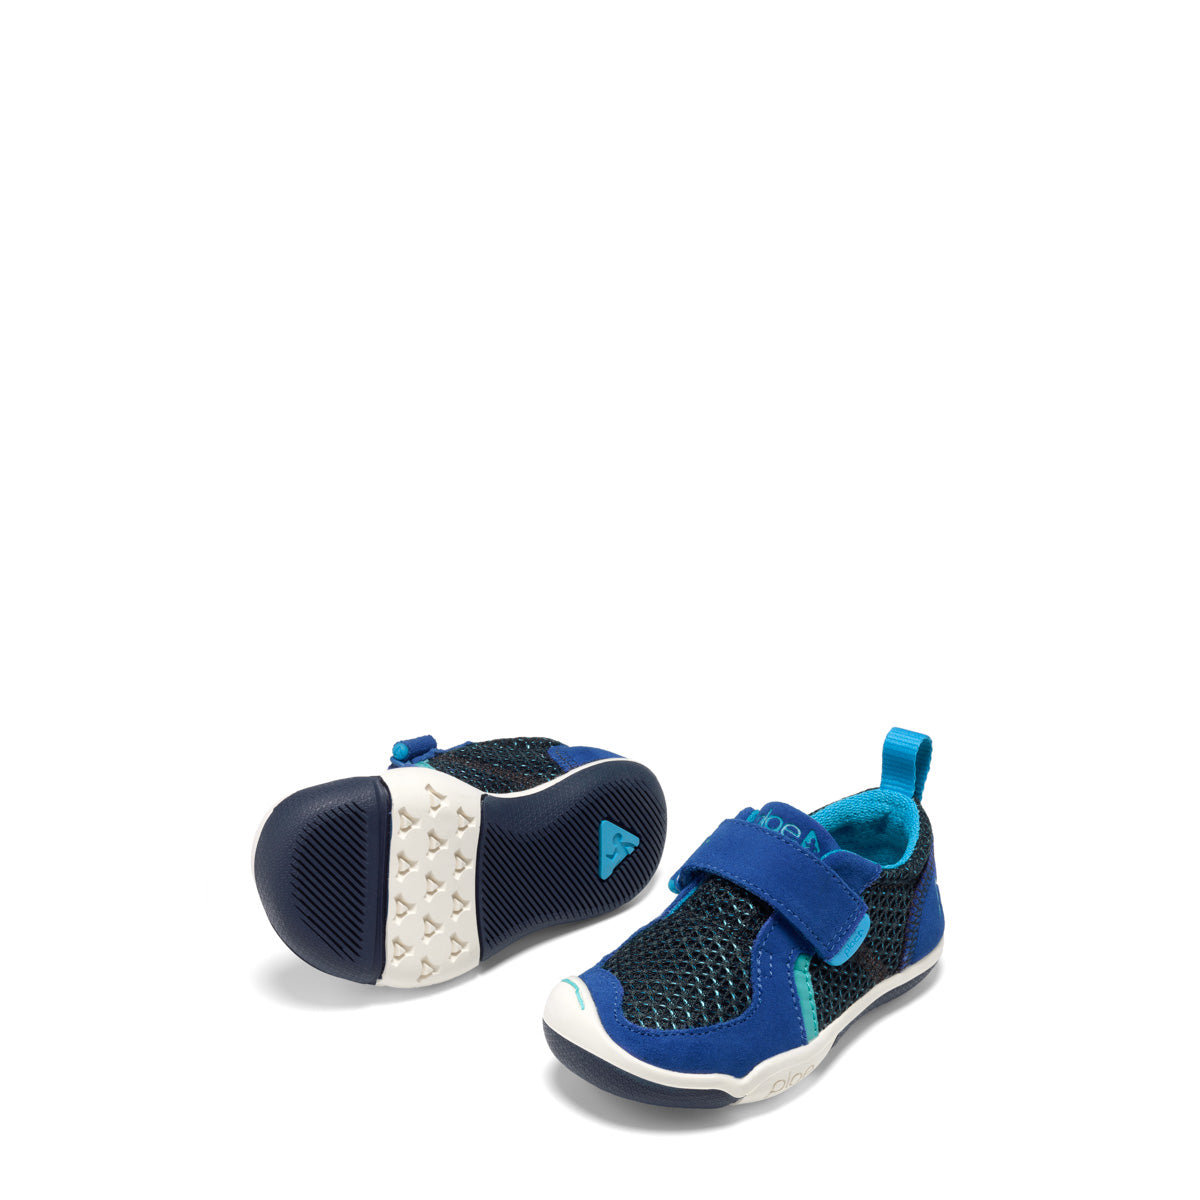 TY H&L IN LIGHT YEAR BLUE (SIZES 6-13.5)